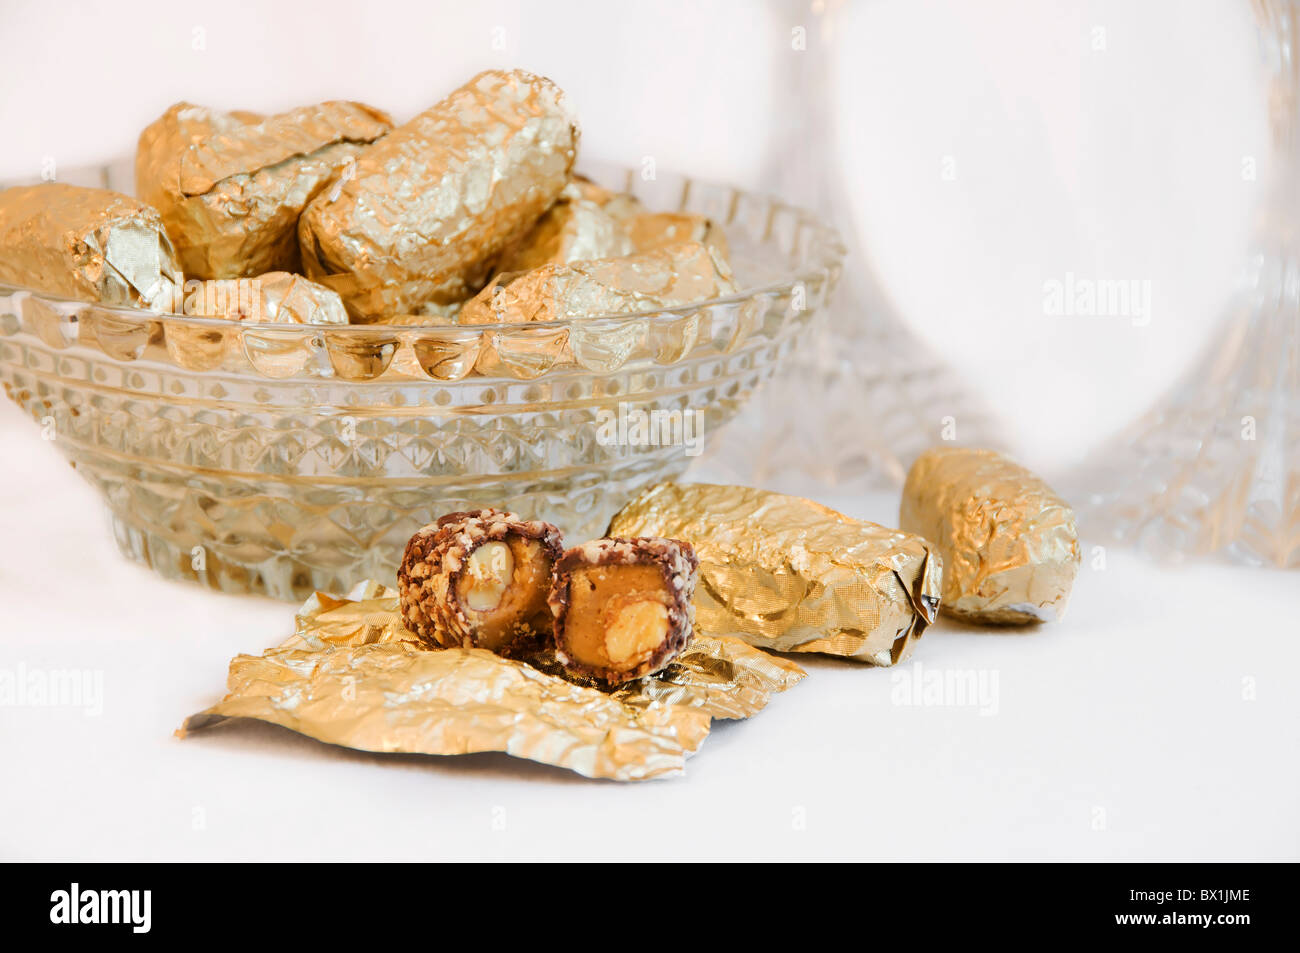 Gold foil wrapped pieces of Almond Roca candy are placed in a crystal bowl with an unwrapped candy in front. - Stock Image